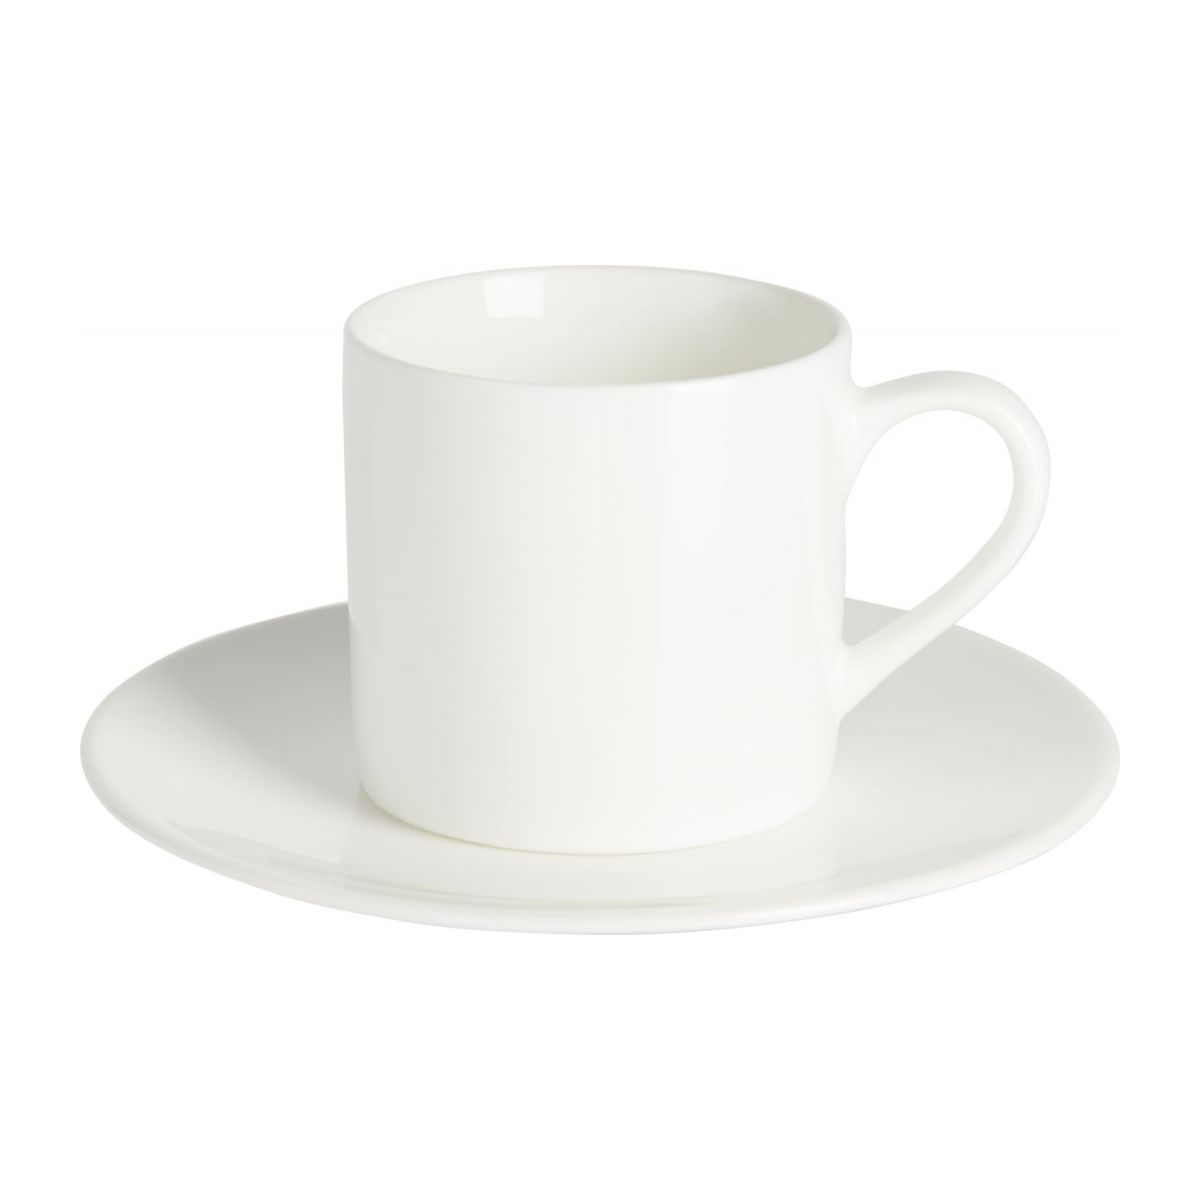 Coffee cup and saucer n°2